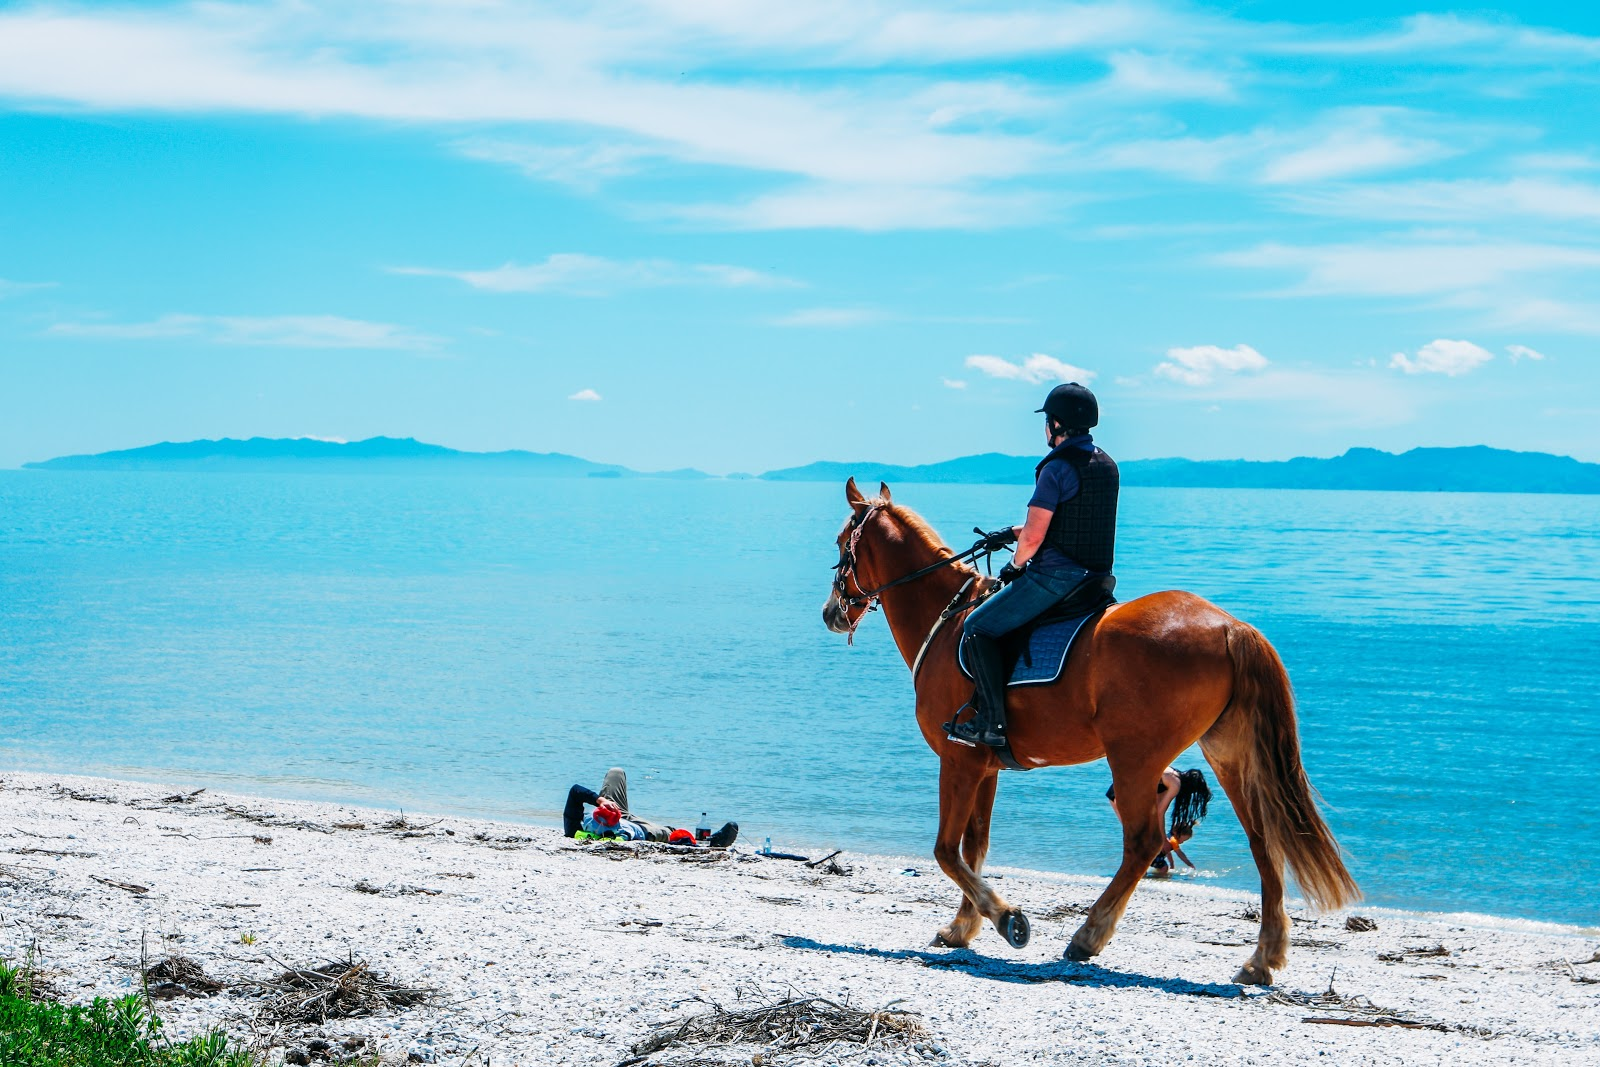 Swimming with horses on Vieques is one of the fun things to do in Puerto Rico